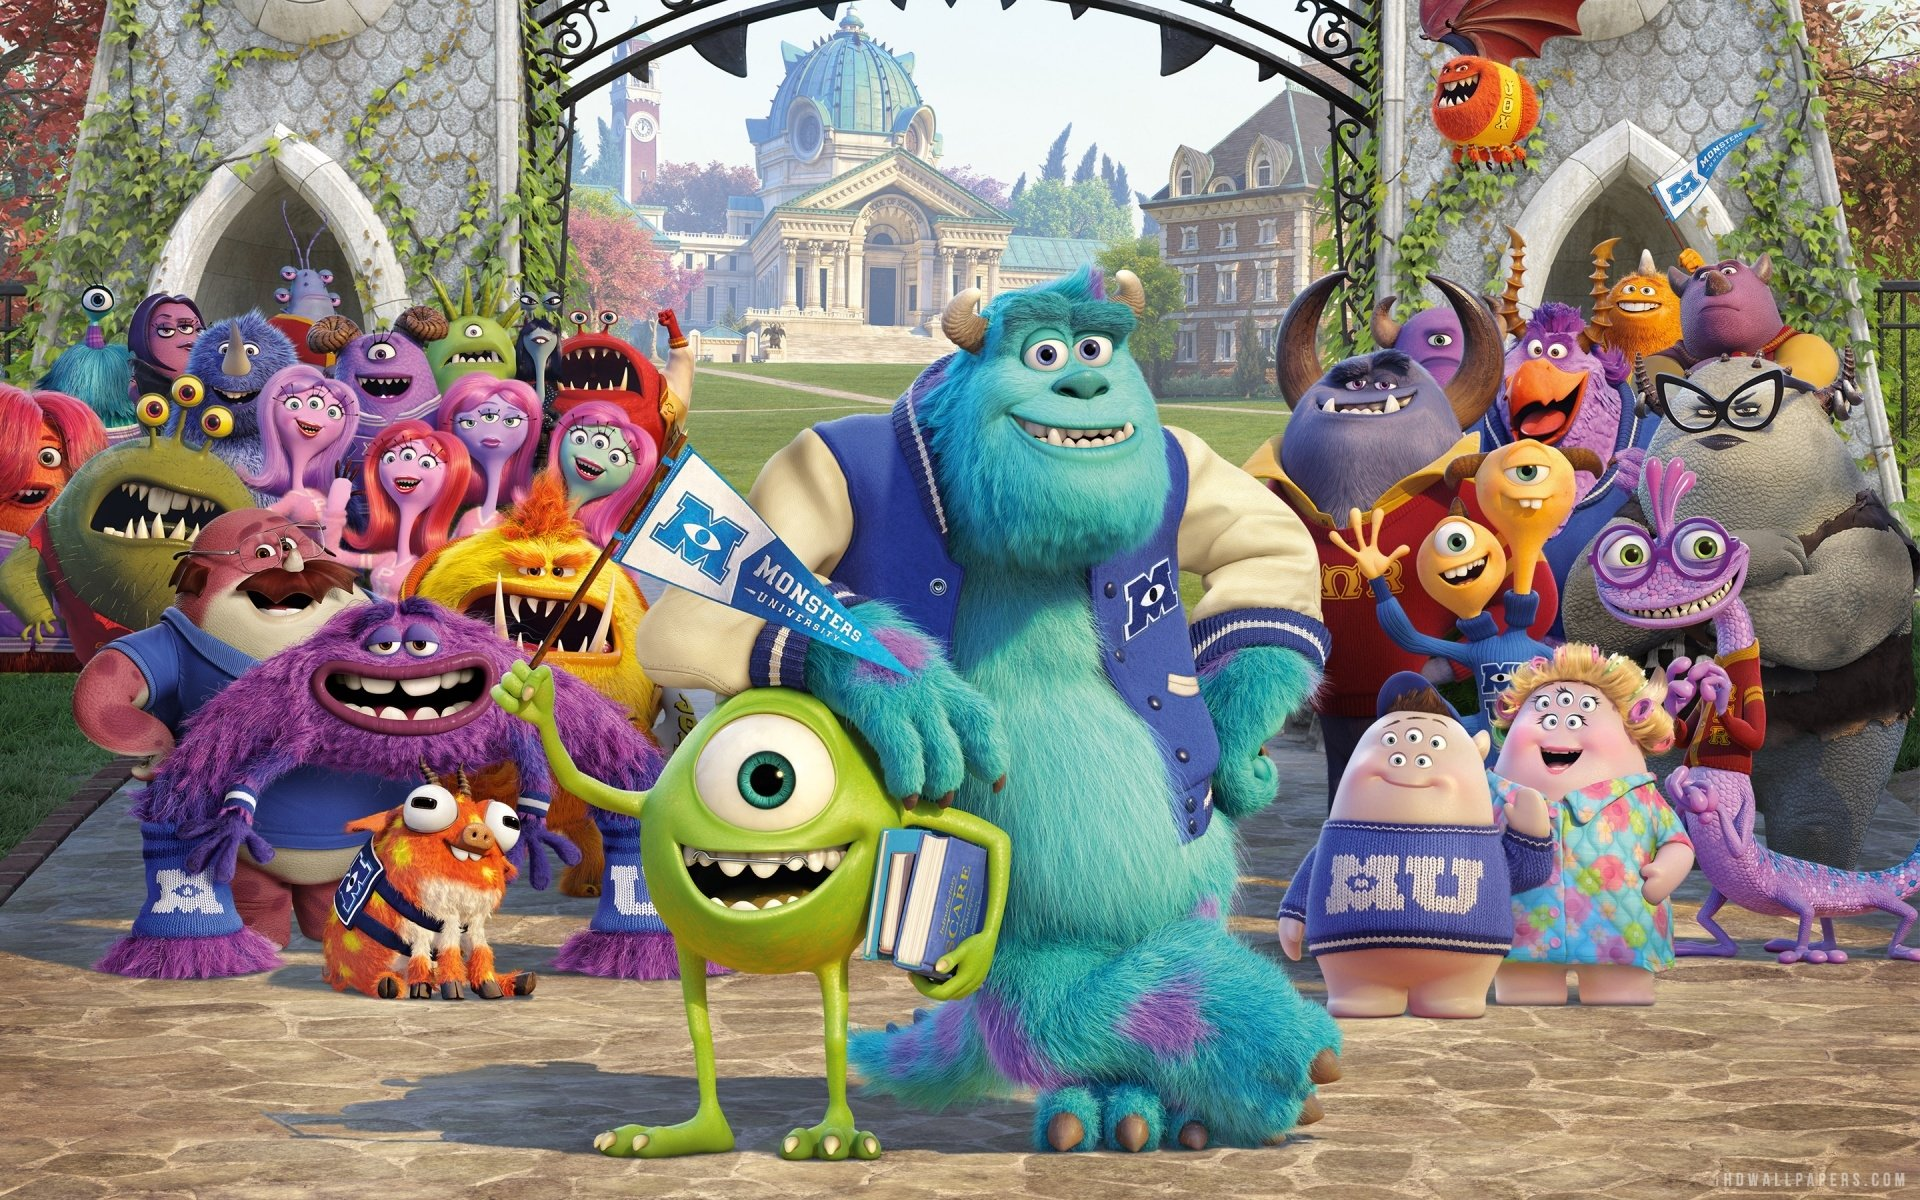 Wallpaper iphone monster university - Hd Wallpaper Background Id 418370 1920x1200 Movie Monsters University